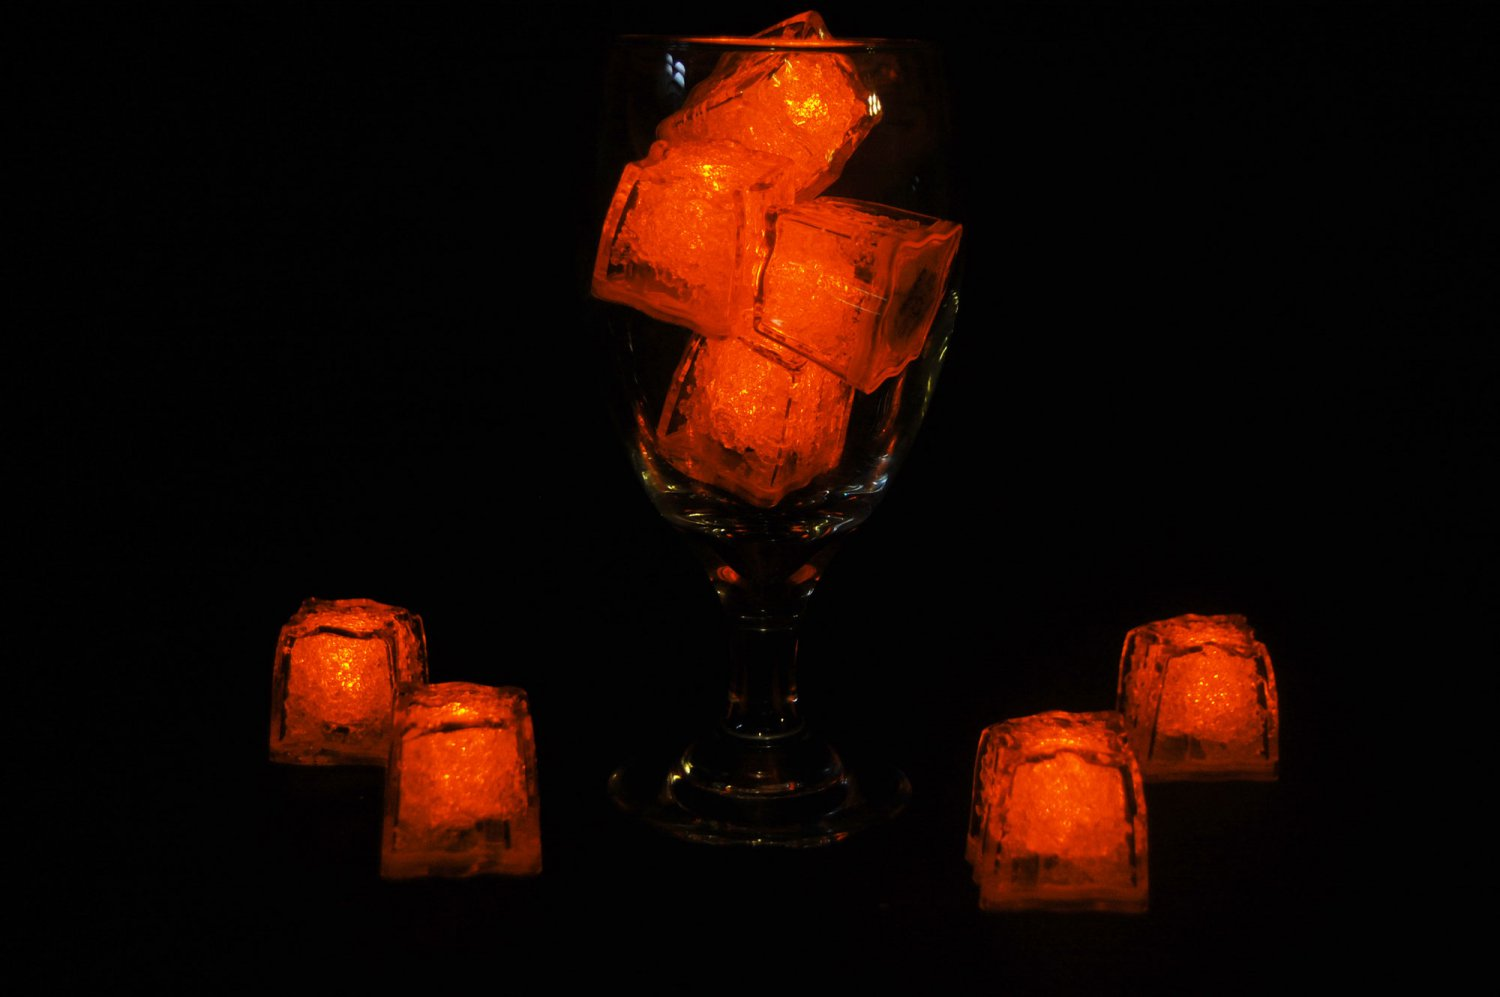 Set of 8 Litecubes  Brand Jewel Color Tinted Amber Orange Light up LED Ice Cubes